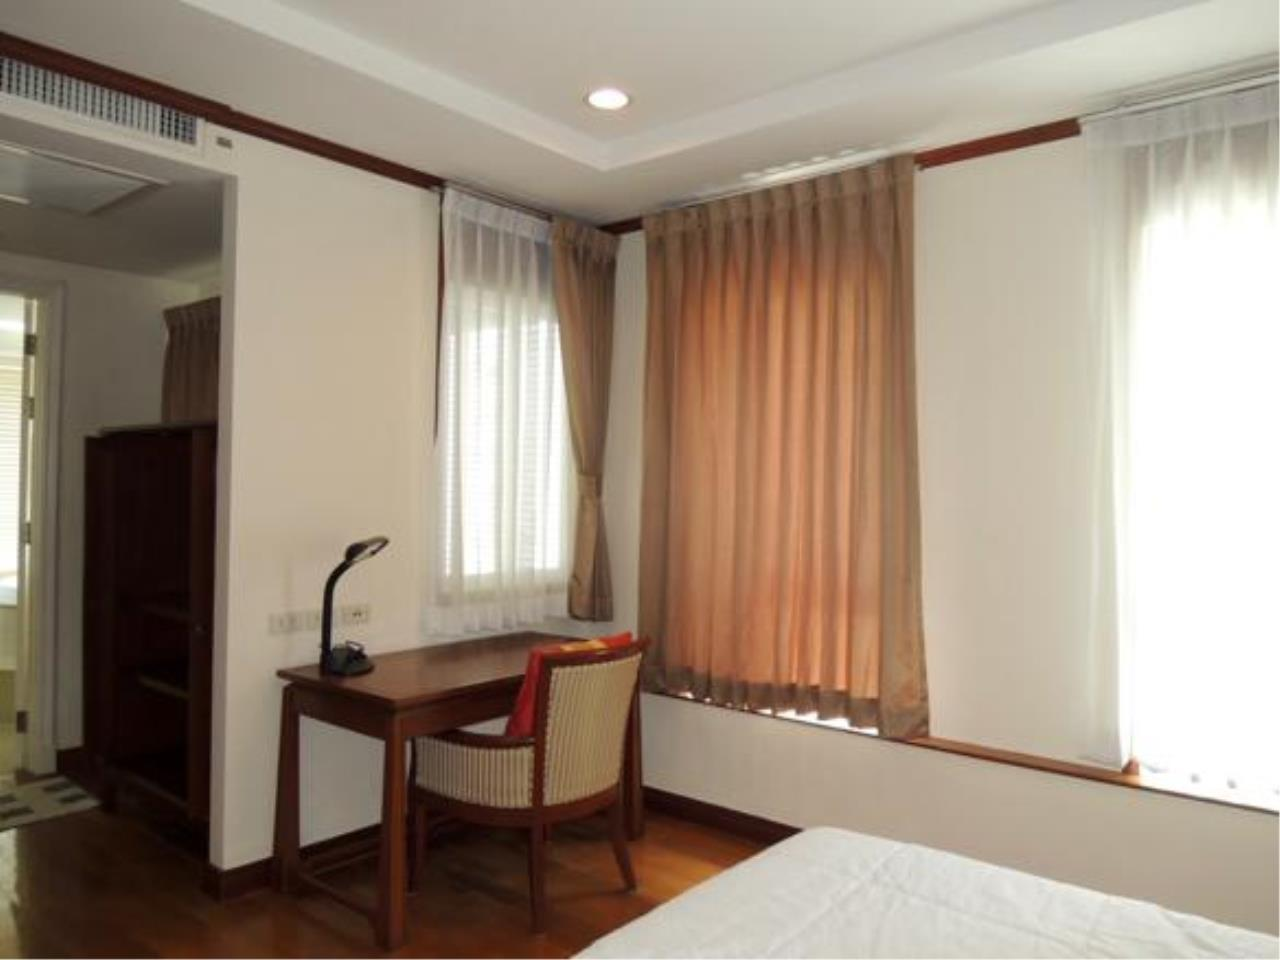 Right Move Thailand Agency's CA4116  For Rent The Bangkok Sukhumvit - 70,000 THB 2 Bedrooms 114 Sqm 6